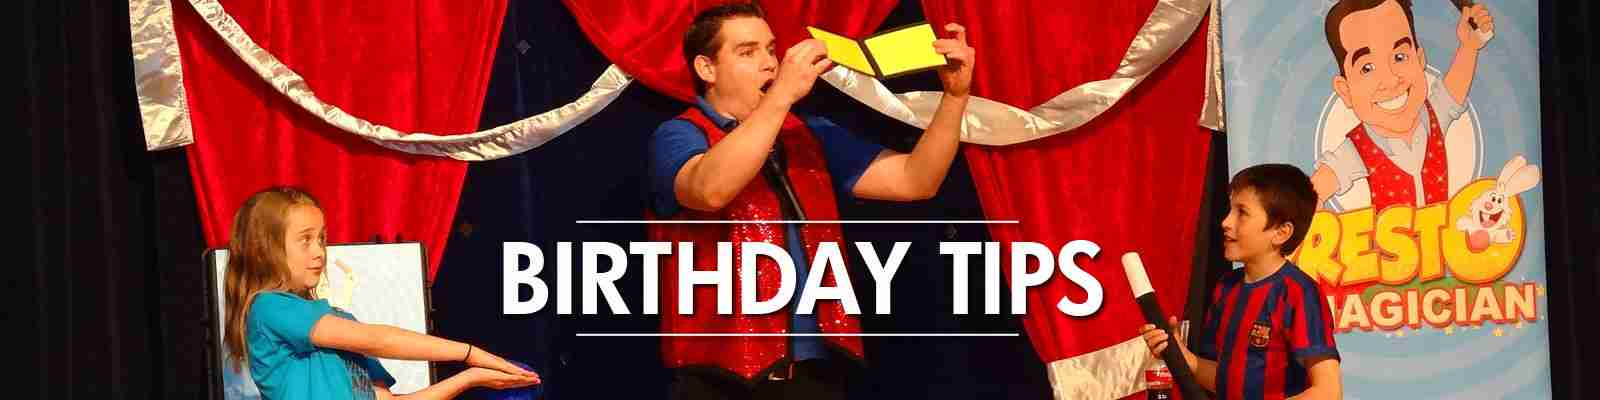 birthday party tips from kid's magician Presto